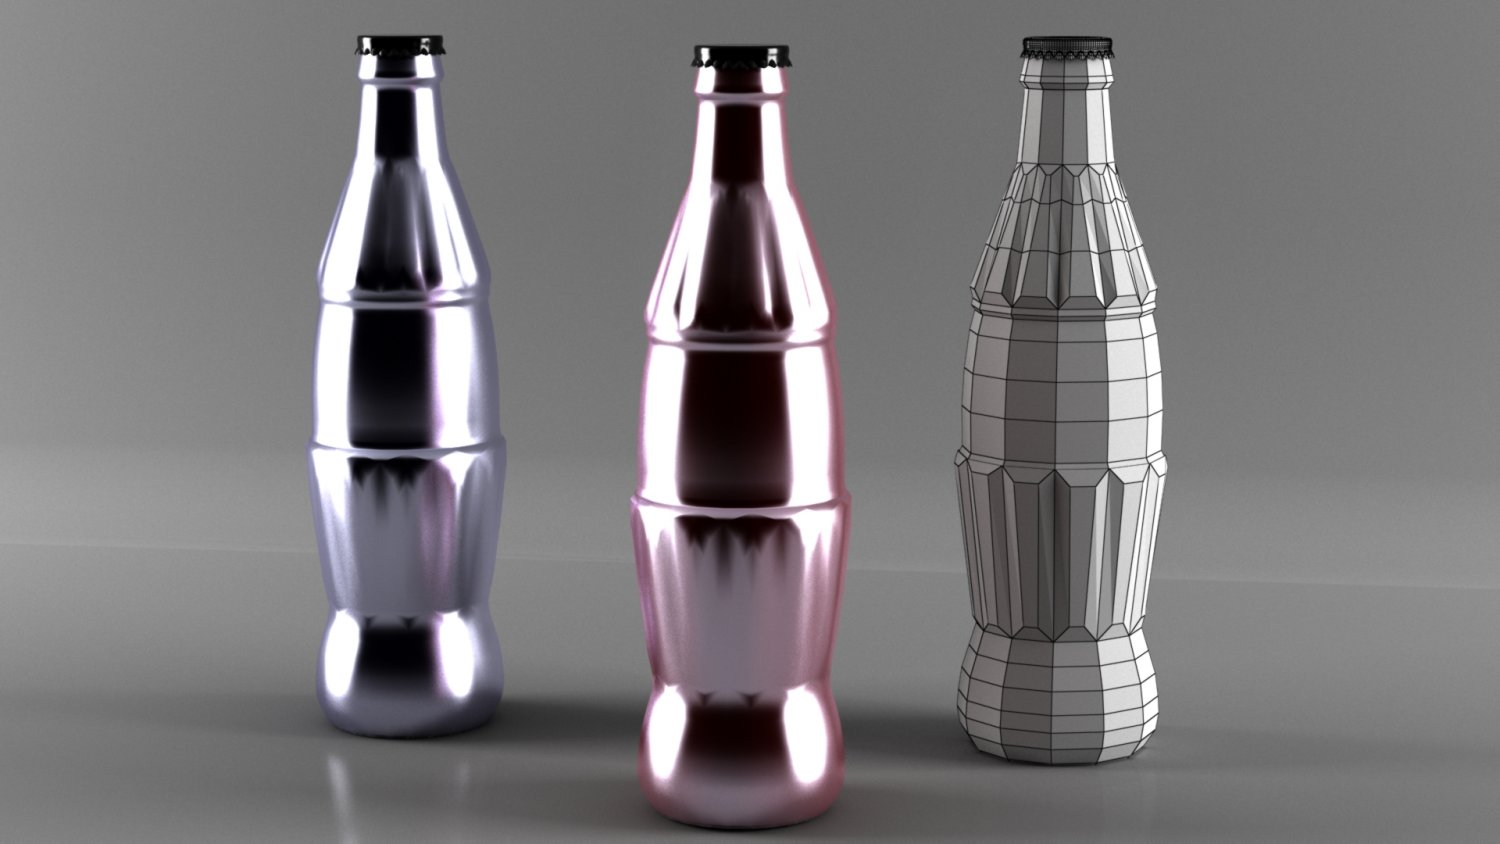 Coca cola bottle low poly Free 3D Model in Beverage 3DExport